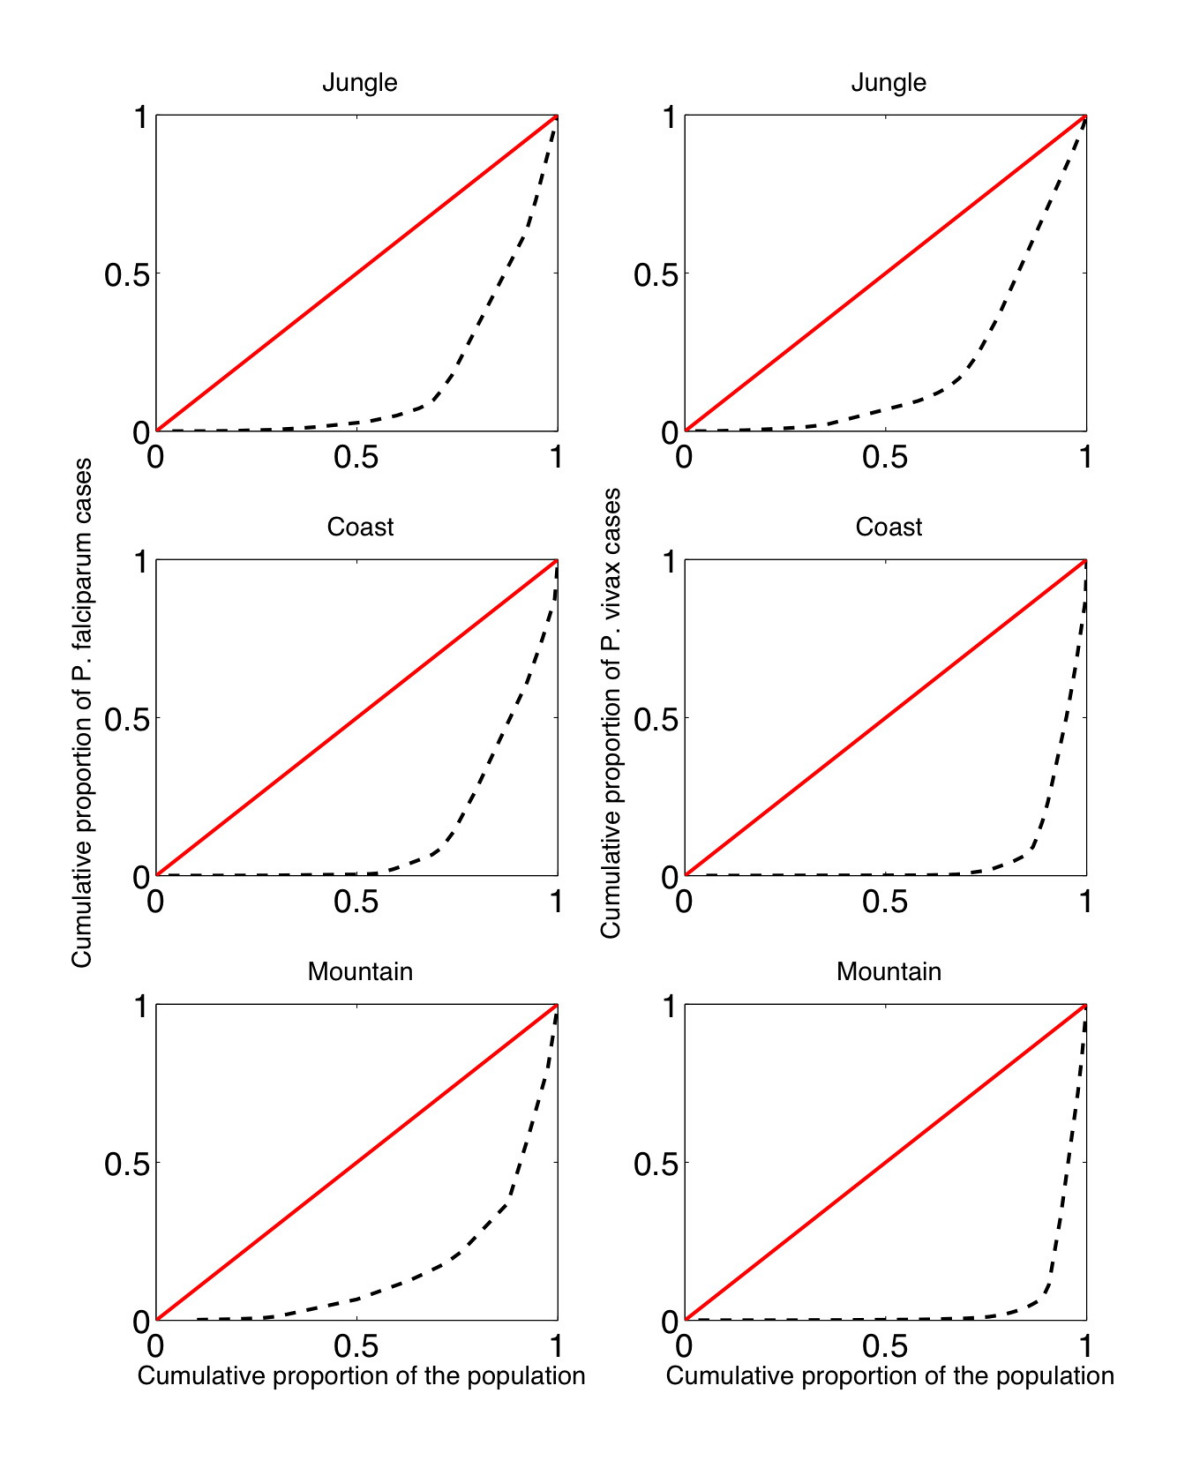 http://static-content.springer.com/image/art%3A10.1186%2F1475-2875-8-142/MediaObjects/12936_2009_Article_891_Fig10_HTML.jpg